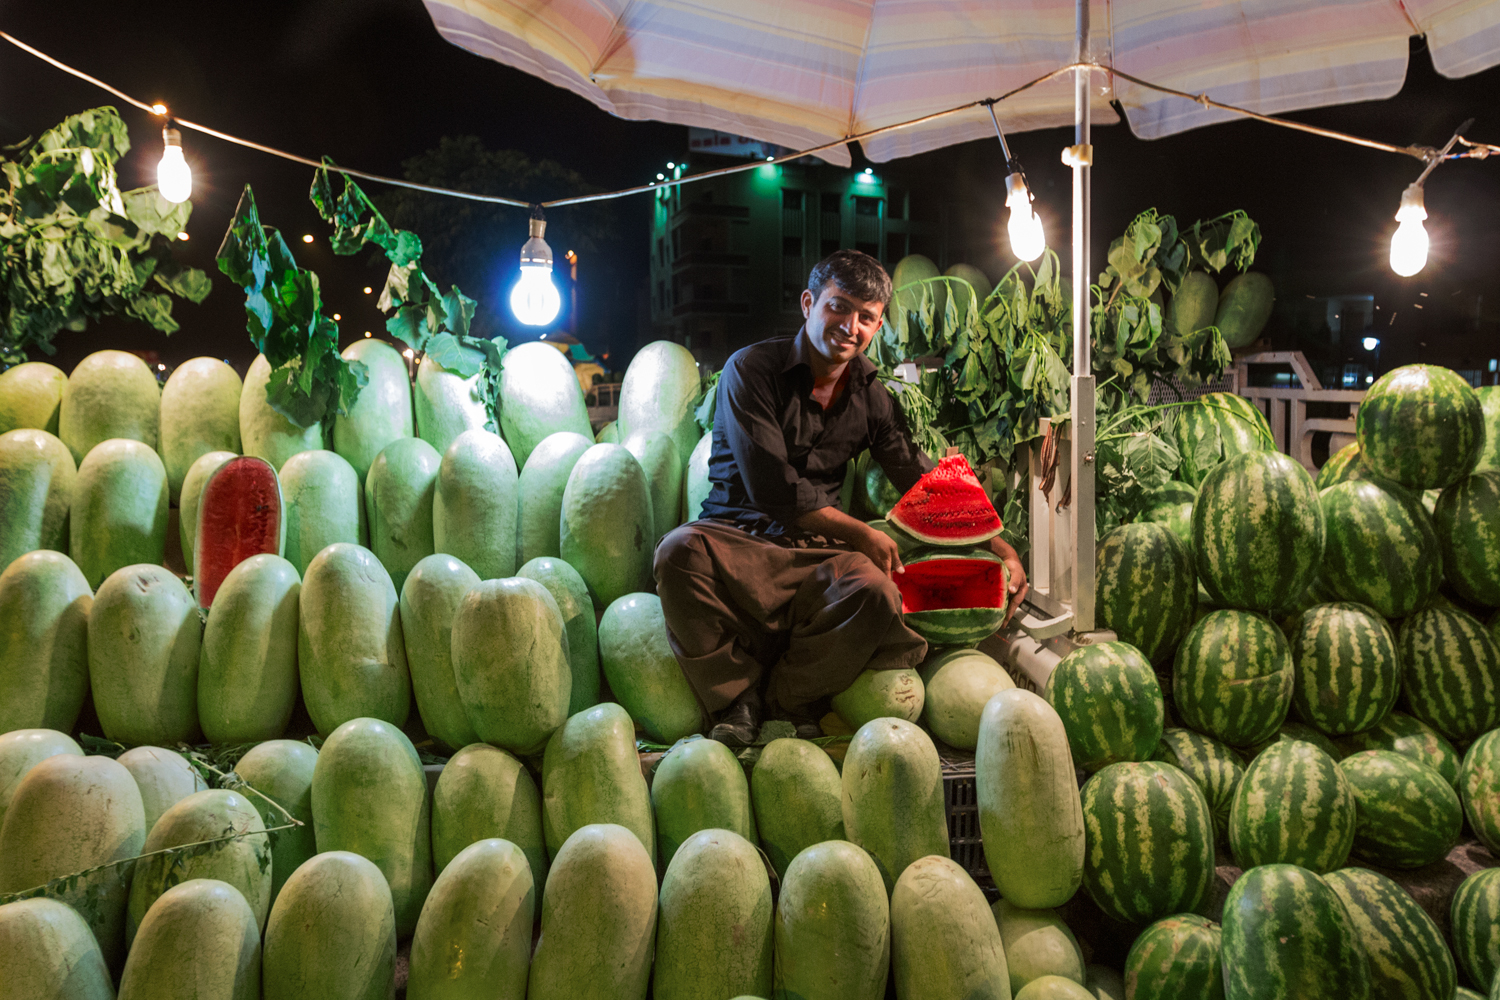 In Iraq, melons are synonymous with summer; in a region where clean drinking water is scarce, watermelons are a good source of water, and vendors line every major roadway. Previously the region cultivated & exported many varieties of melons; today, only a few remain. Along with the watermelon, many traditional crops to have suffered in the last decade, as farmers struggle to cultivate, transport, and competitively price their harvest.